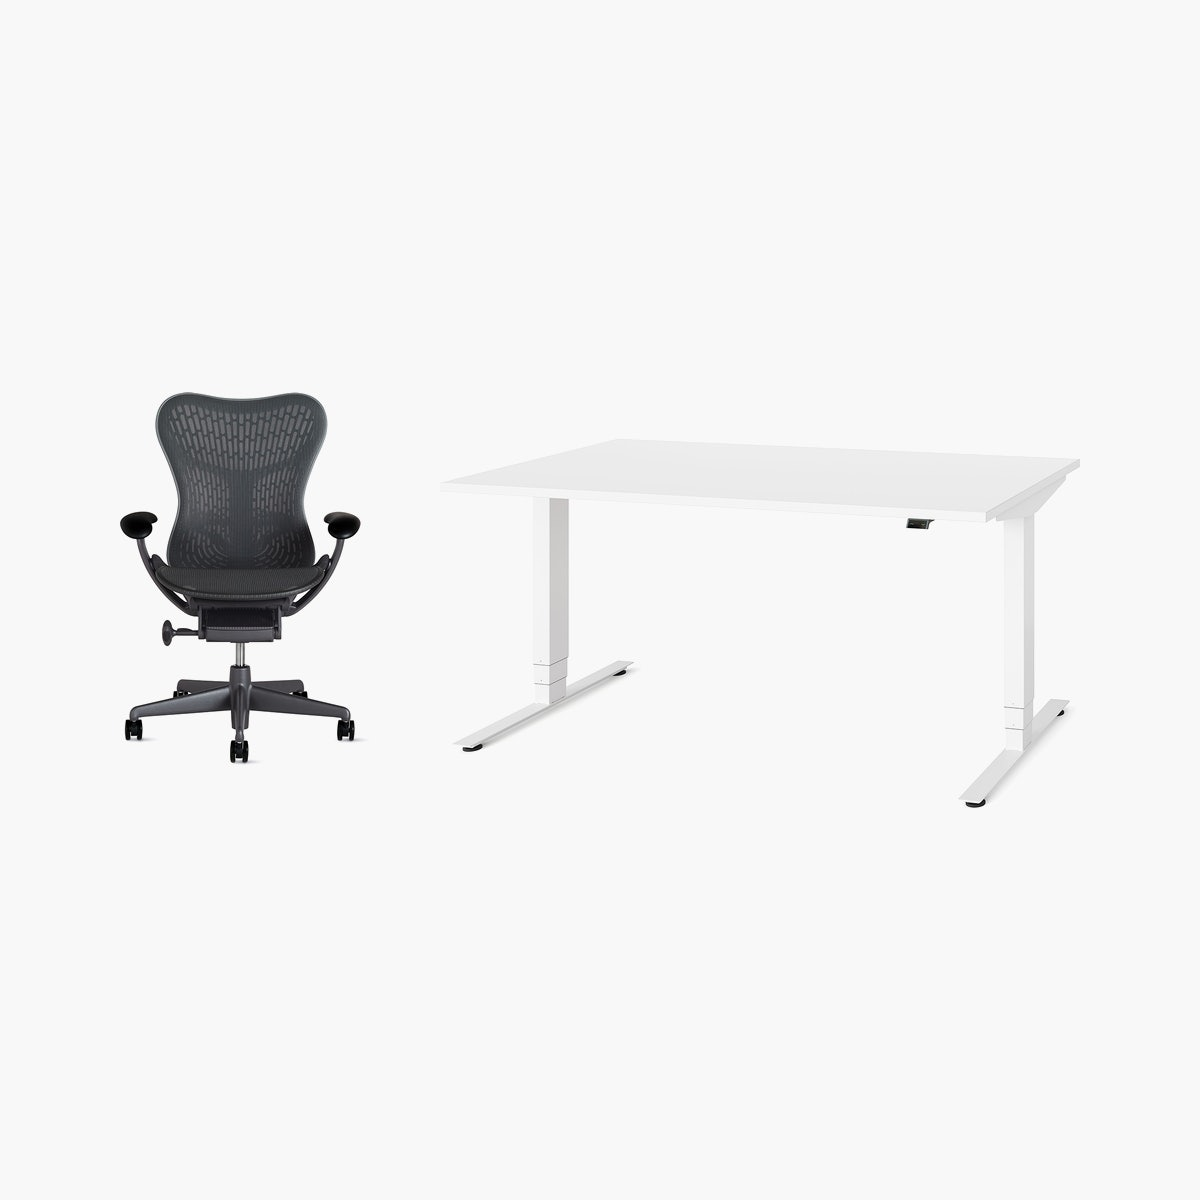 Mirra 2 / Nevi Sit-to-Stand Desk Office Bundle